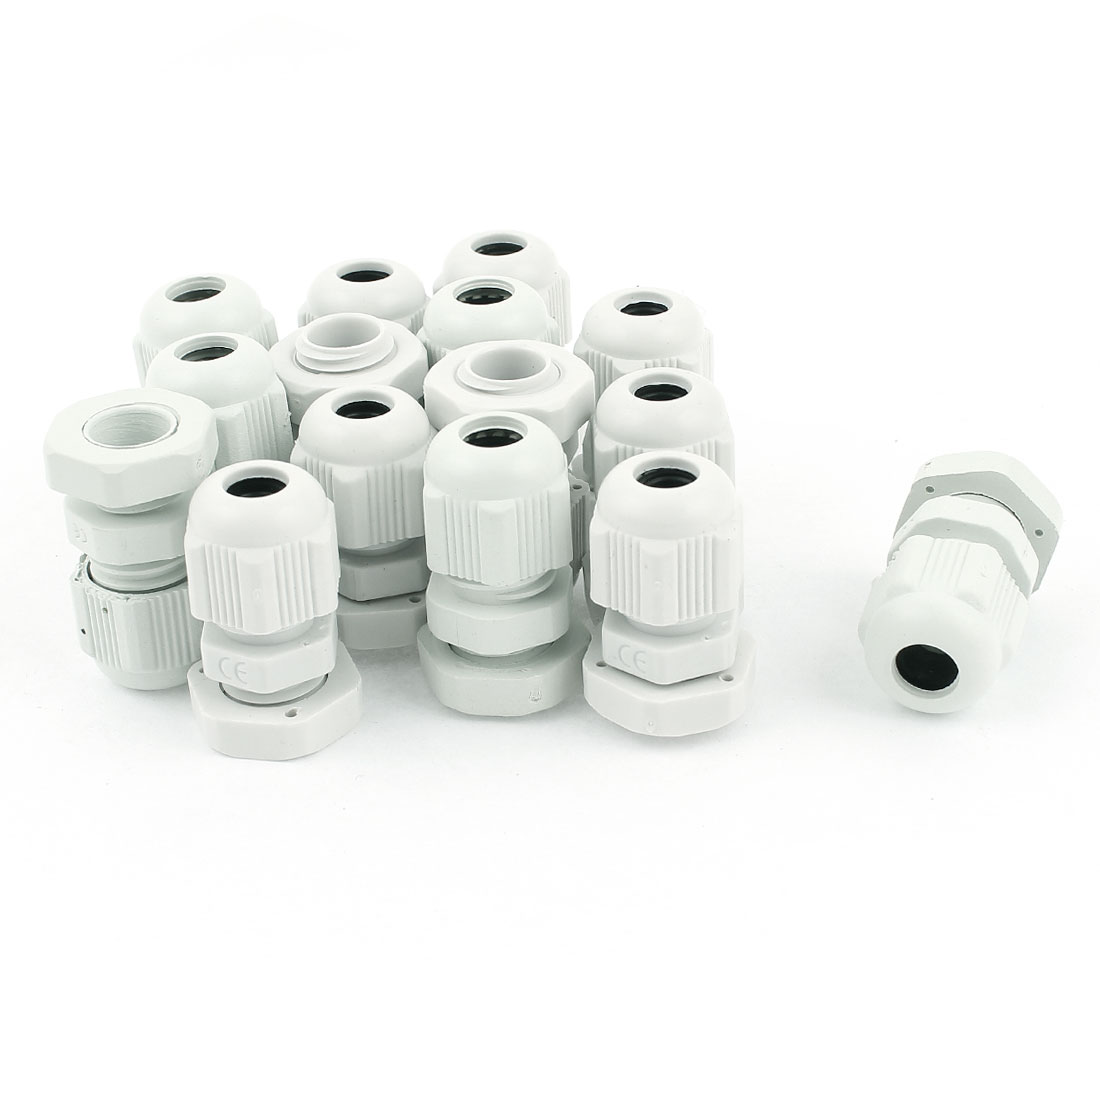 15 Pcs PG7 3.5mm to 6mm Waterproof Connector Adapter Plastic Cables Glands White